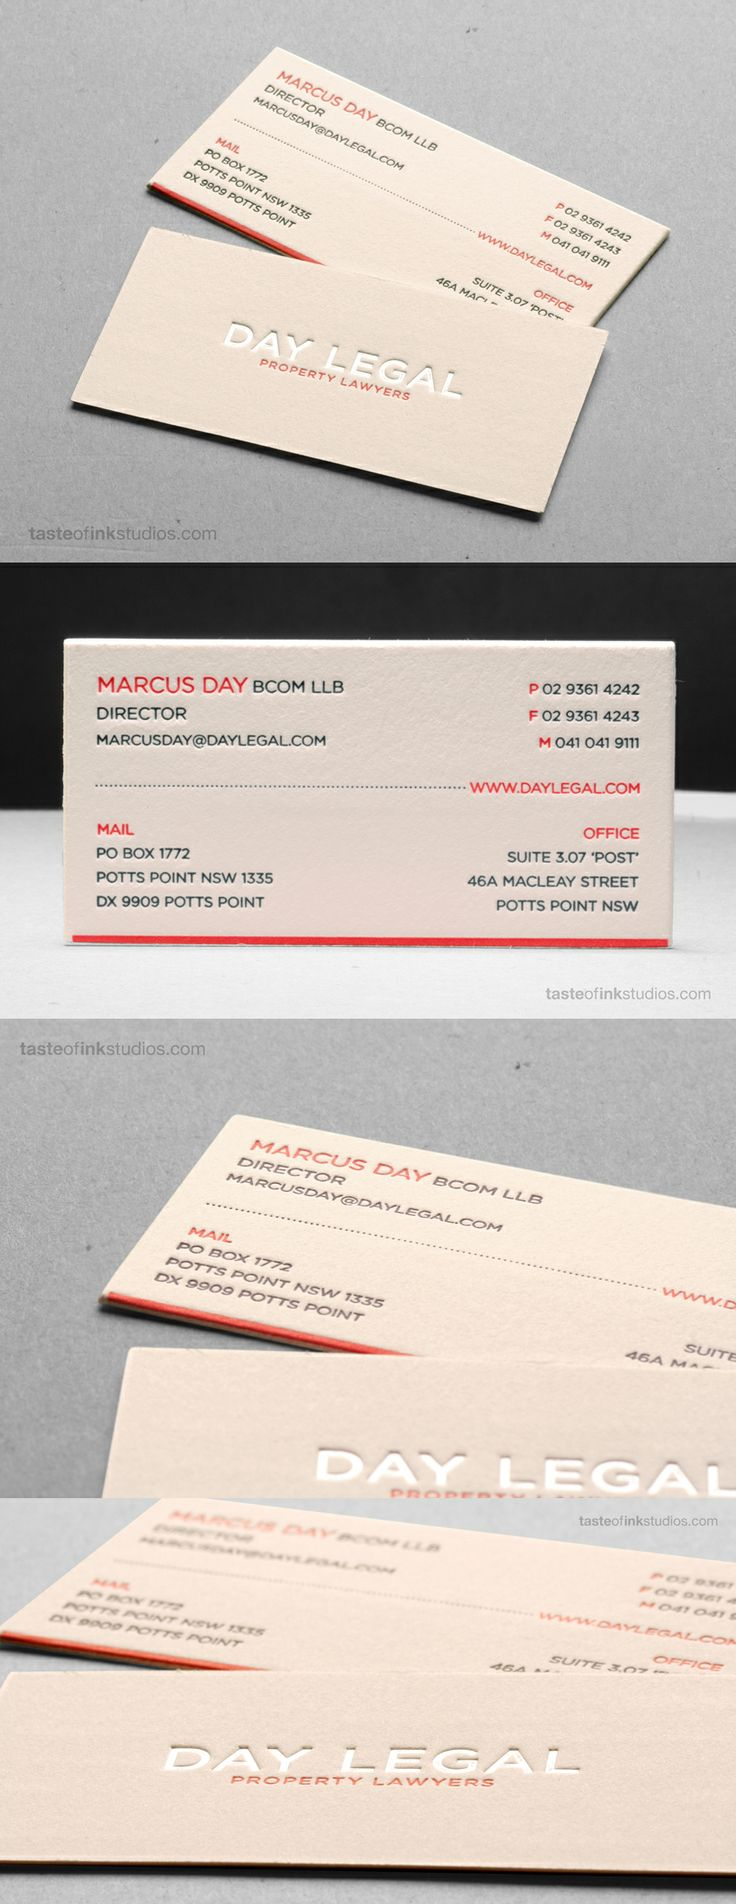 71 best Business Cards images on Pinterest | Business cards, Cards ...